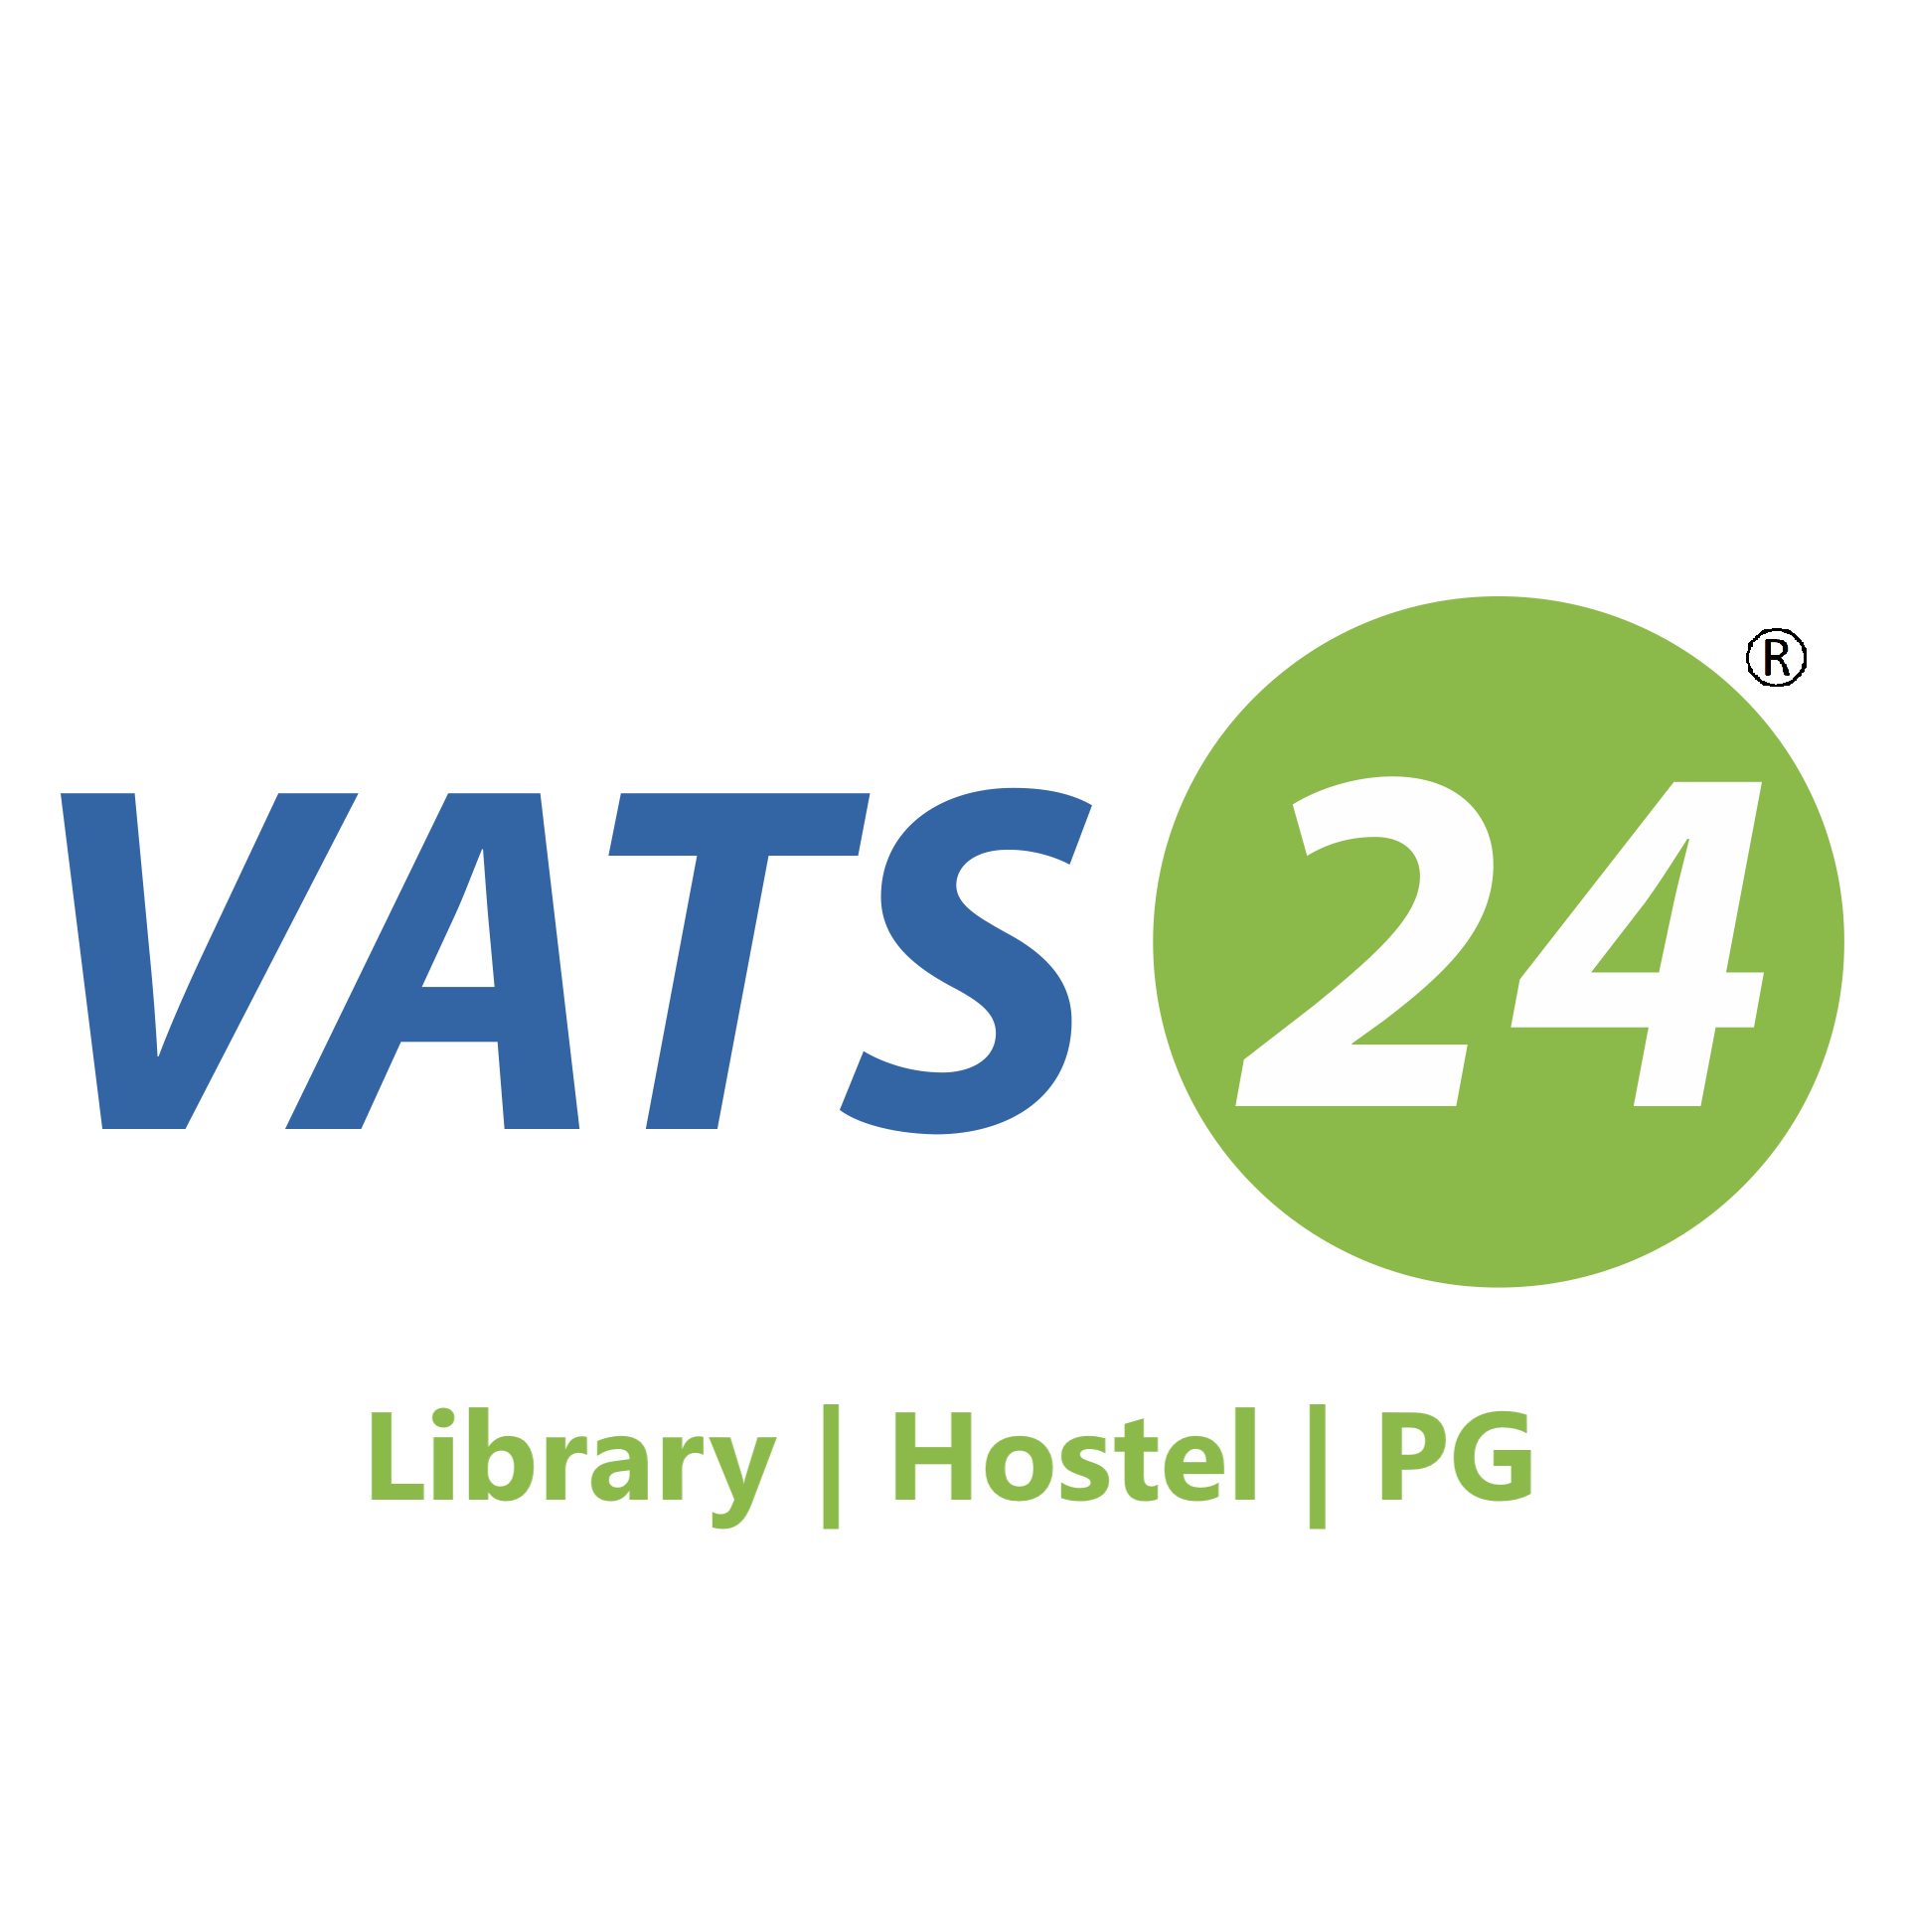 VATS 24 is an online portal for booking seats in libraries and beds in hostels. This portal not only helps students and working professionals by providing them with limitless options on their fingertips but also provides management services to the vendors for them to manage their business/properties in a much better way. VATS 24 stands for Value Addition to Studies 24X7.  VATS 24's underlying philosophy is to always put students first. VATS 24 is an online portal for booking seats in libraries and beds in hostels/pgs. This portal not only helps students and working professionals by providing them with limitless options on their fingertips but also provides management services to the vendors for them to manage their business/properties in a much better way. 